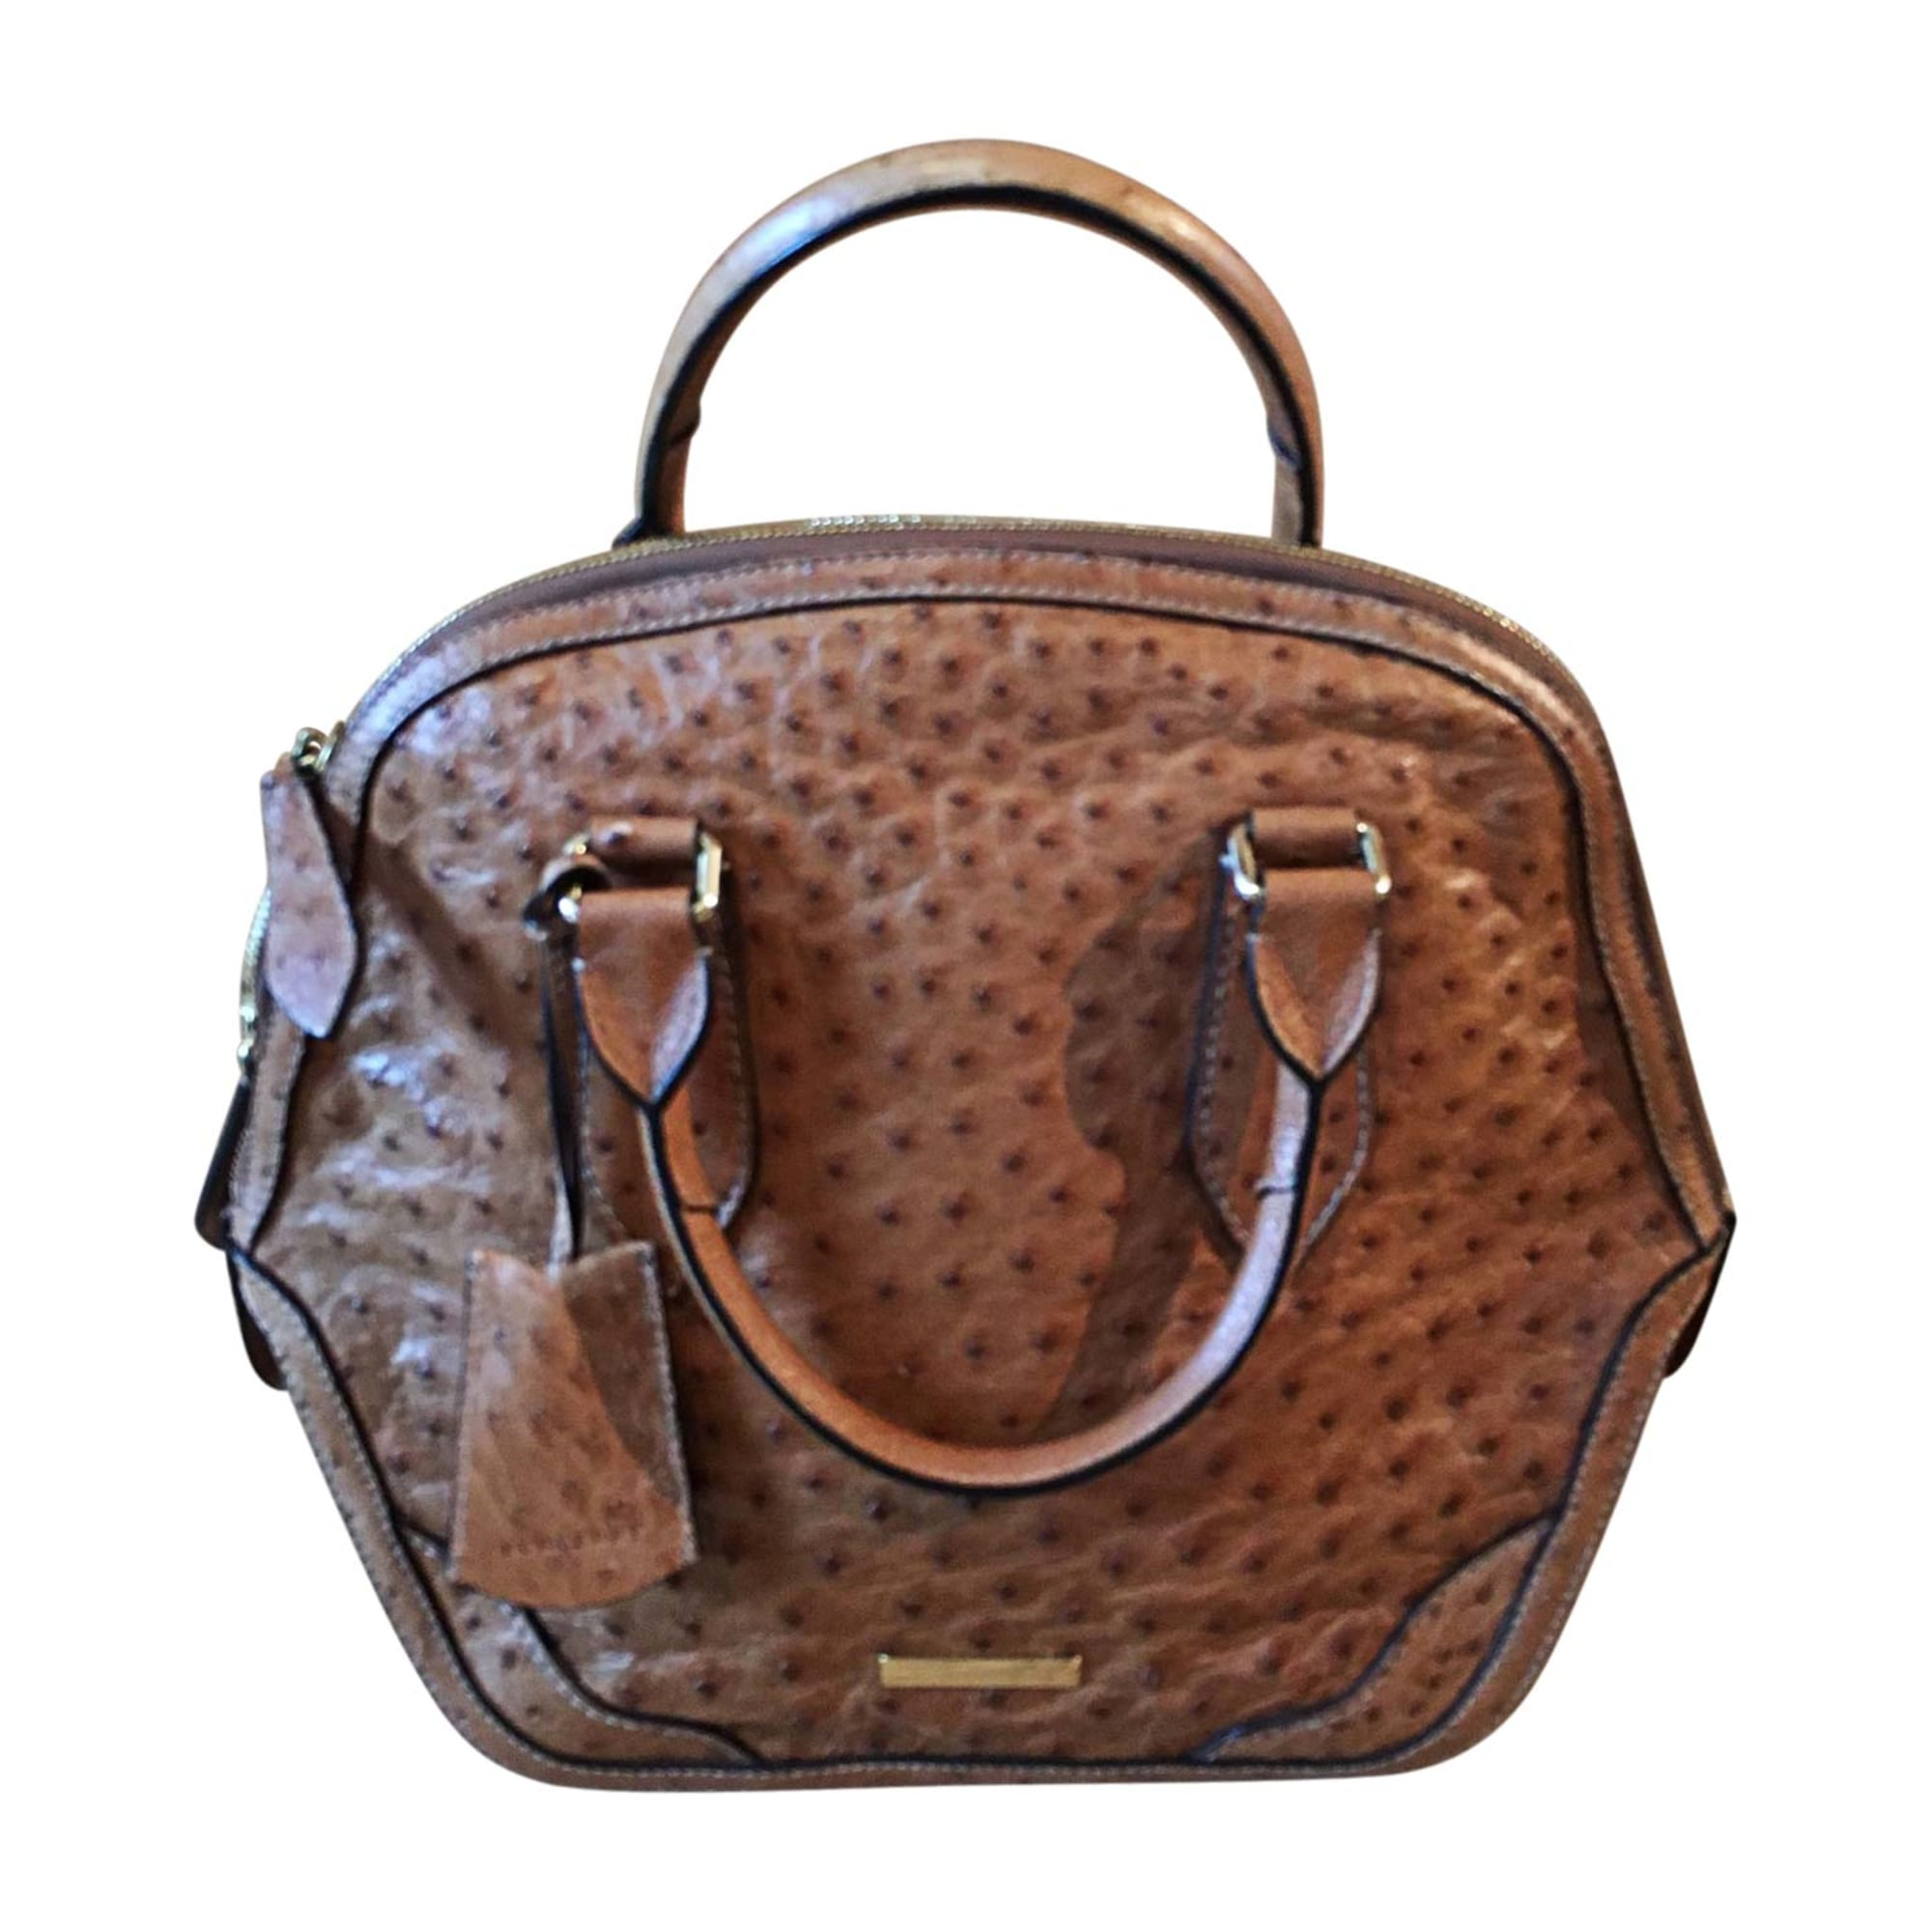 72bd6d6e99 Sac à main en cuir BURBERRY marron - 7333330